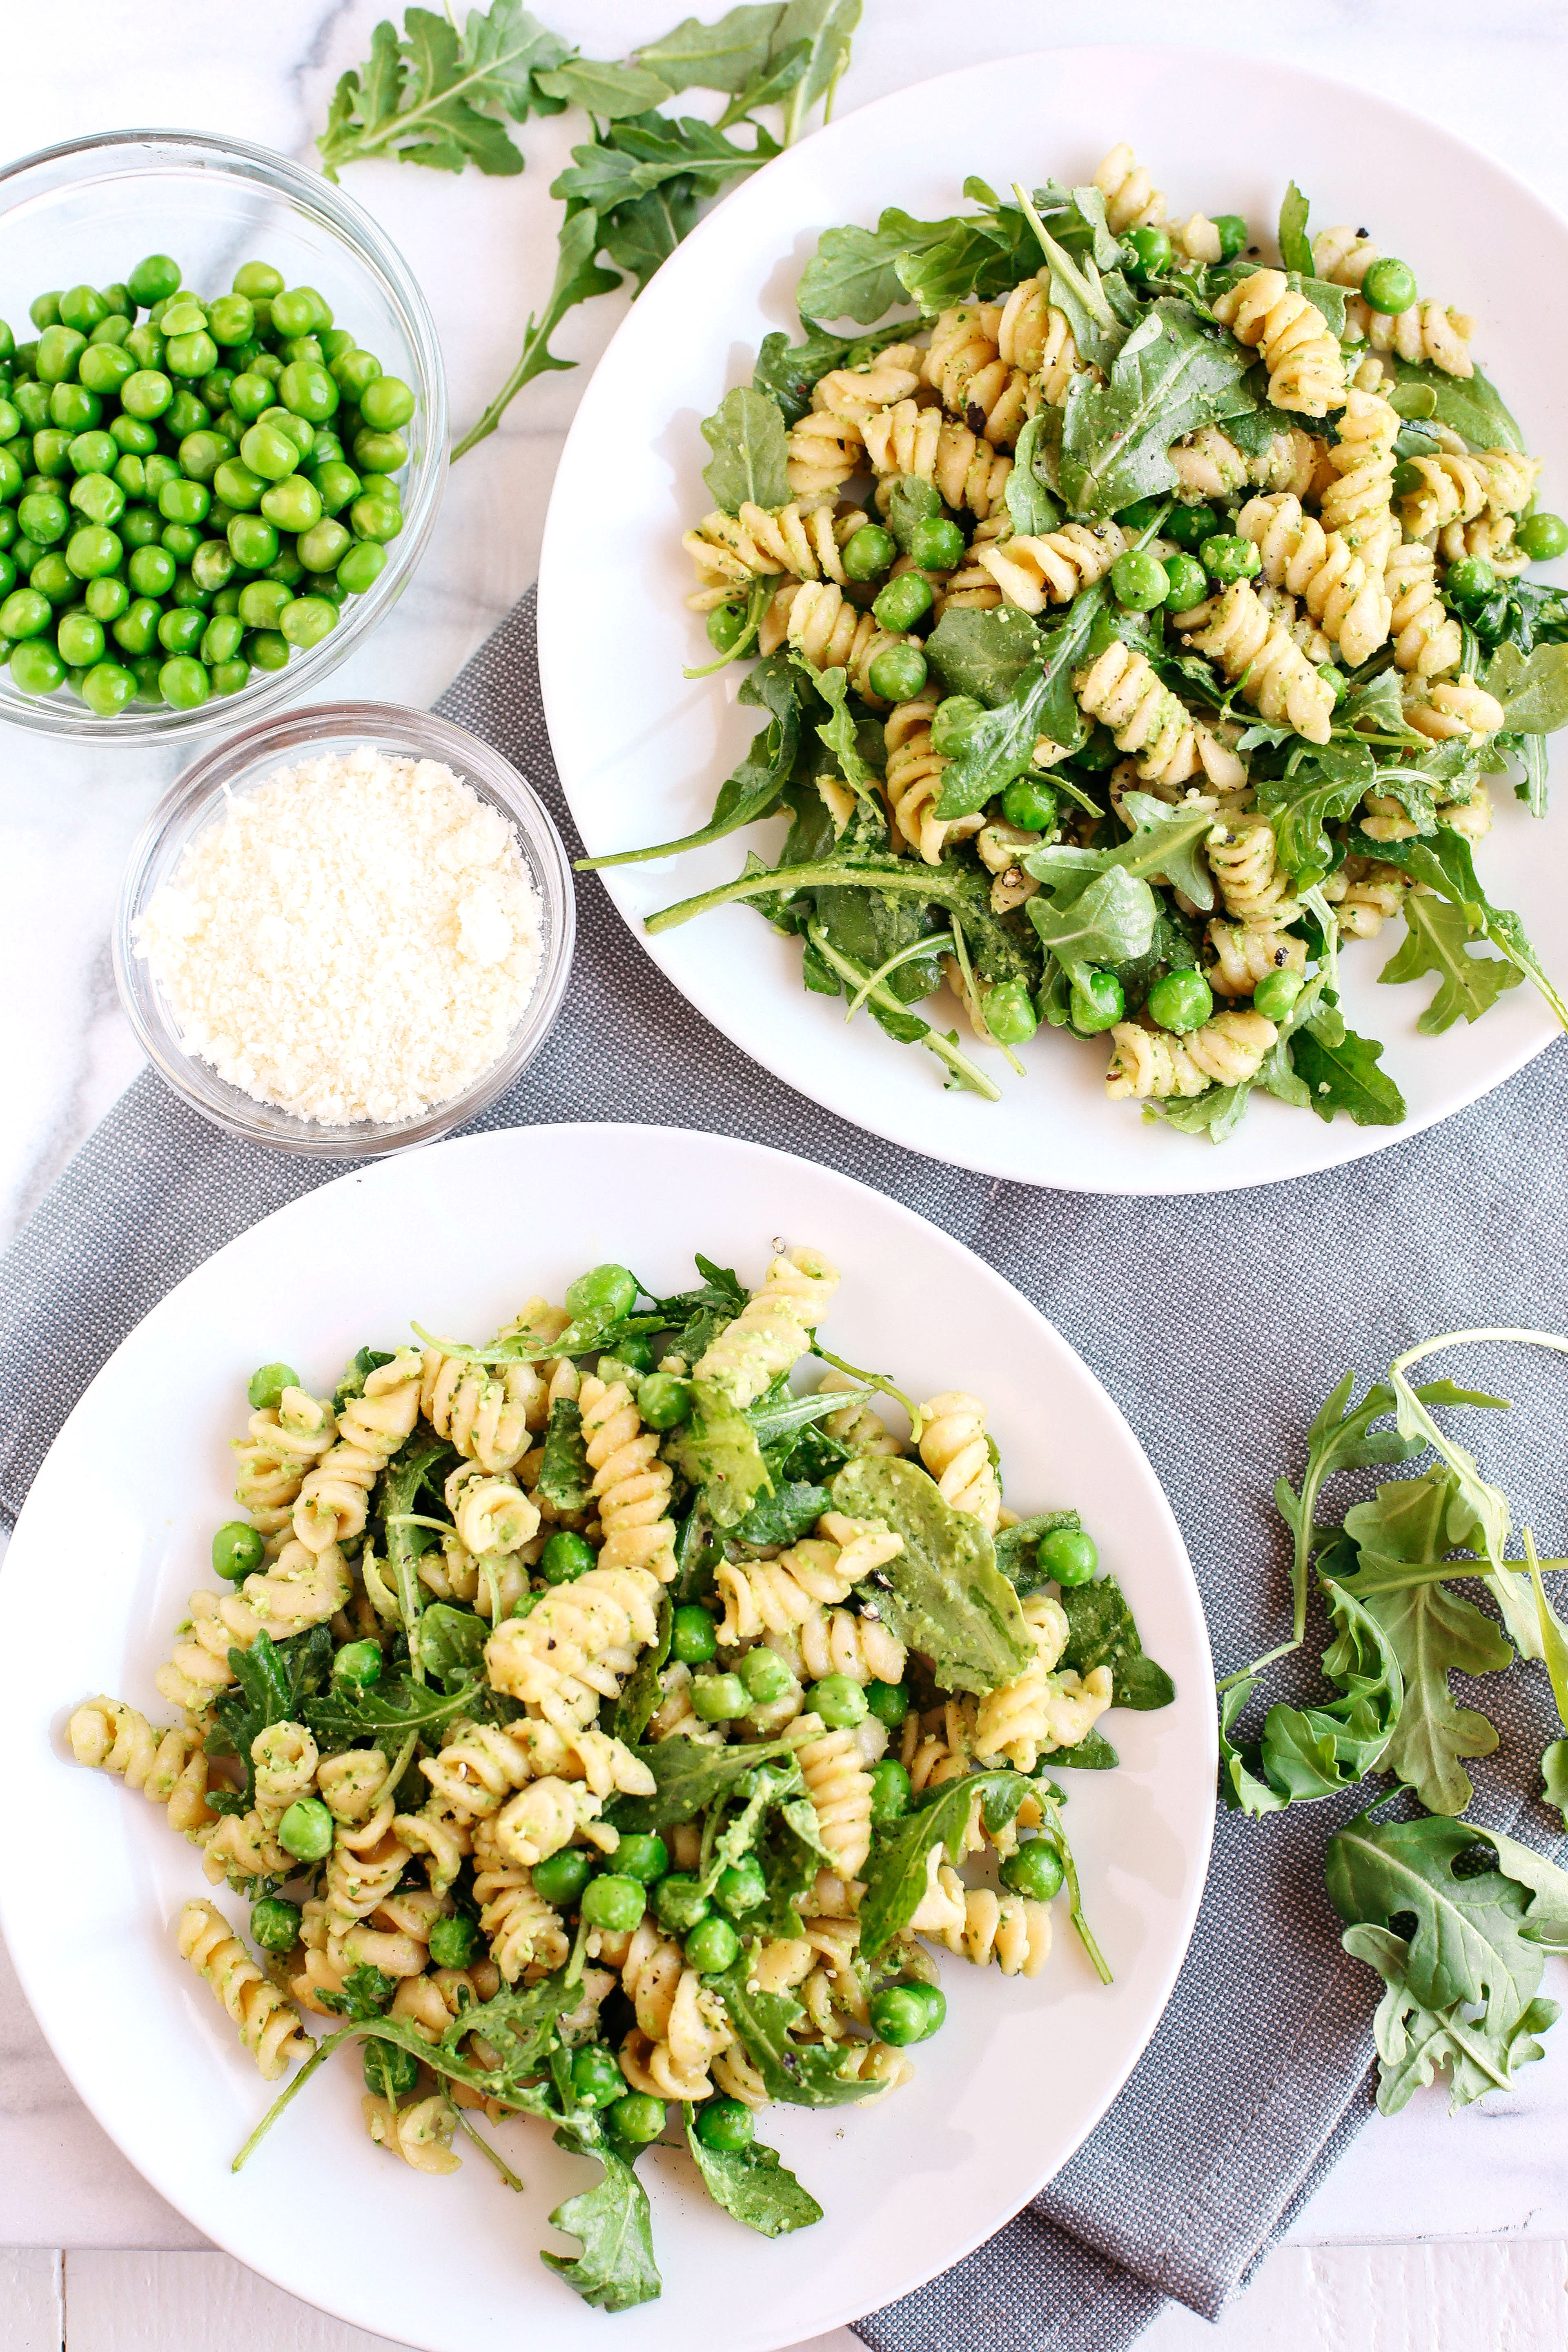 This light and fresh 5 Minute Pea and Arugula Pesto Pasta Salad is the perfect meal or side dish that can easily be made in just minutes!